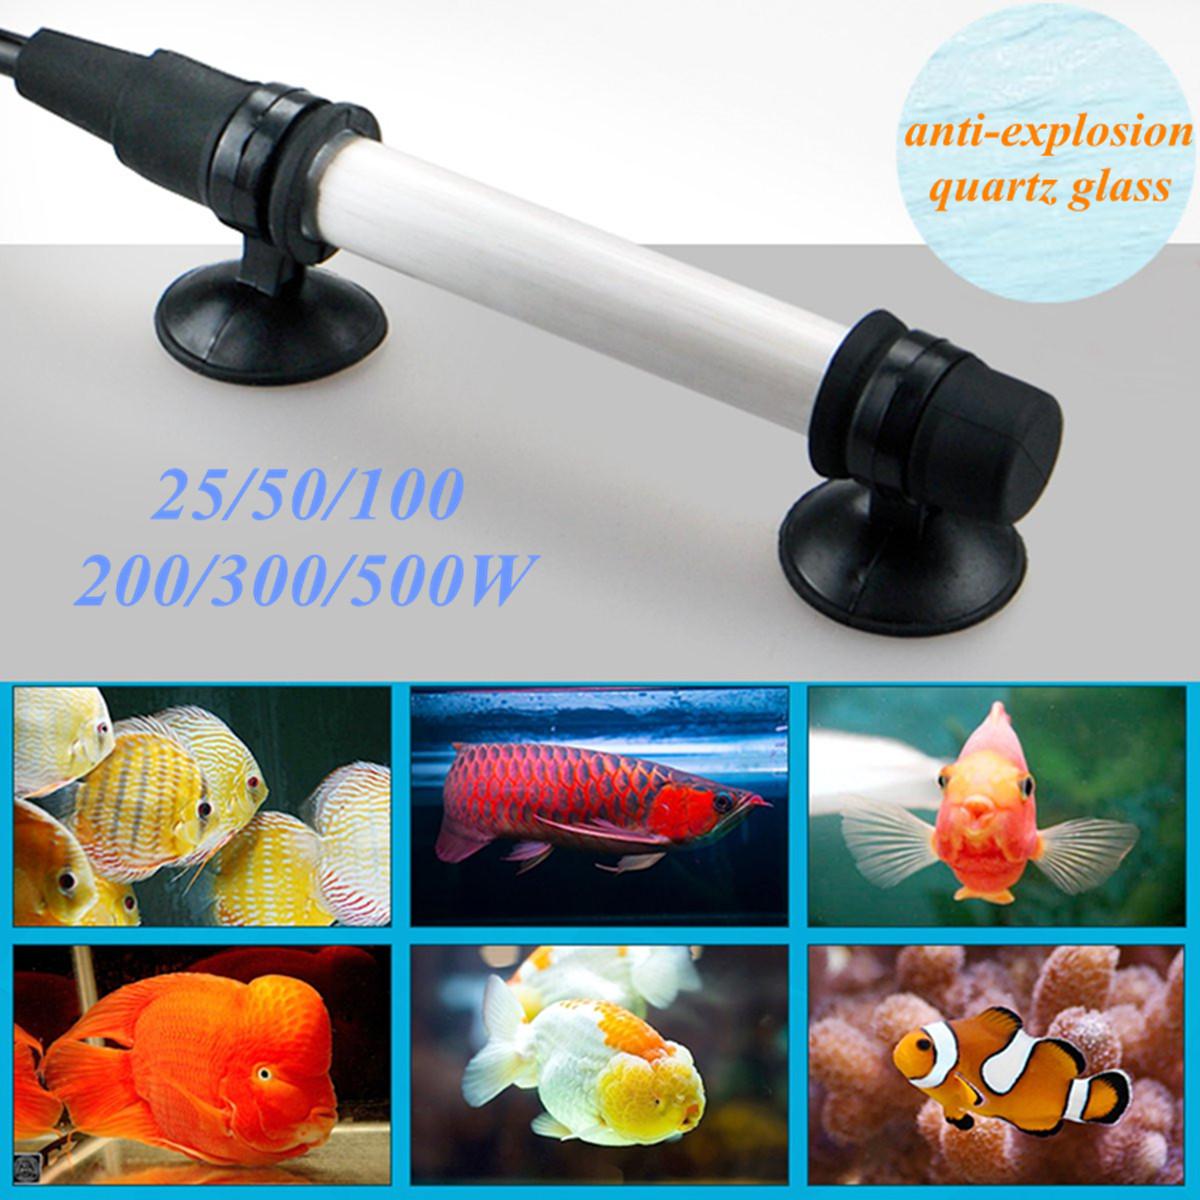 Moaere Aquarium Adjustable Heater Submersible Fish Tank Water Heater Thermostat